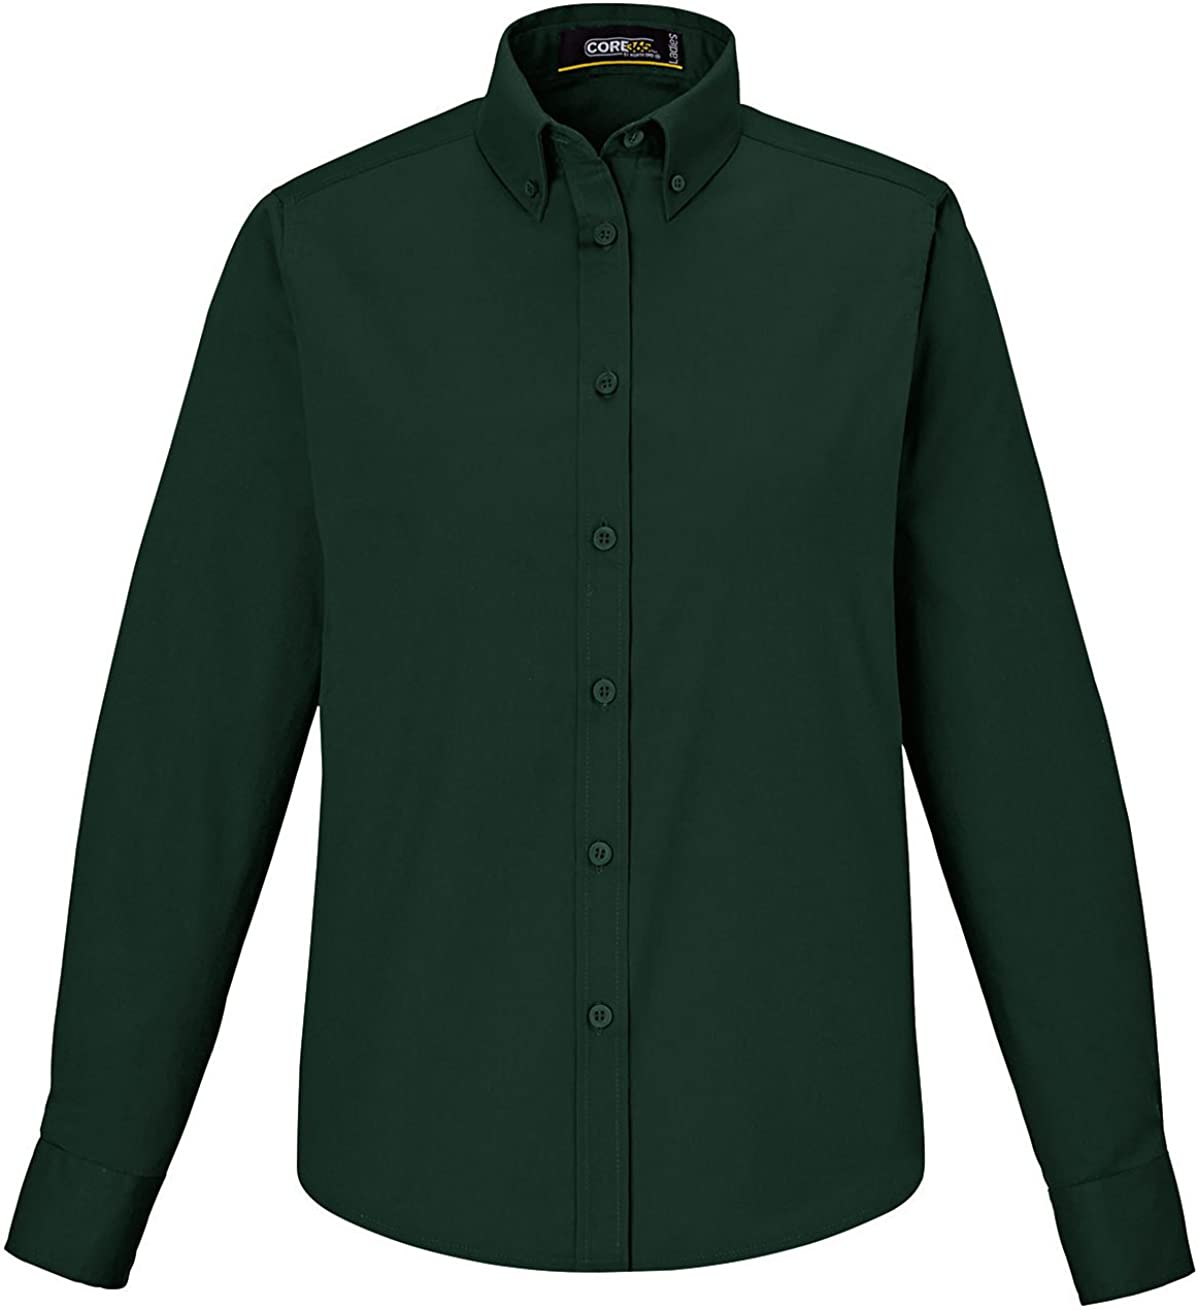 Ash City Operate Ladies Core 365 Long Sleeve Twill Shirt Forest Green 3X